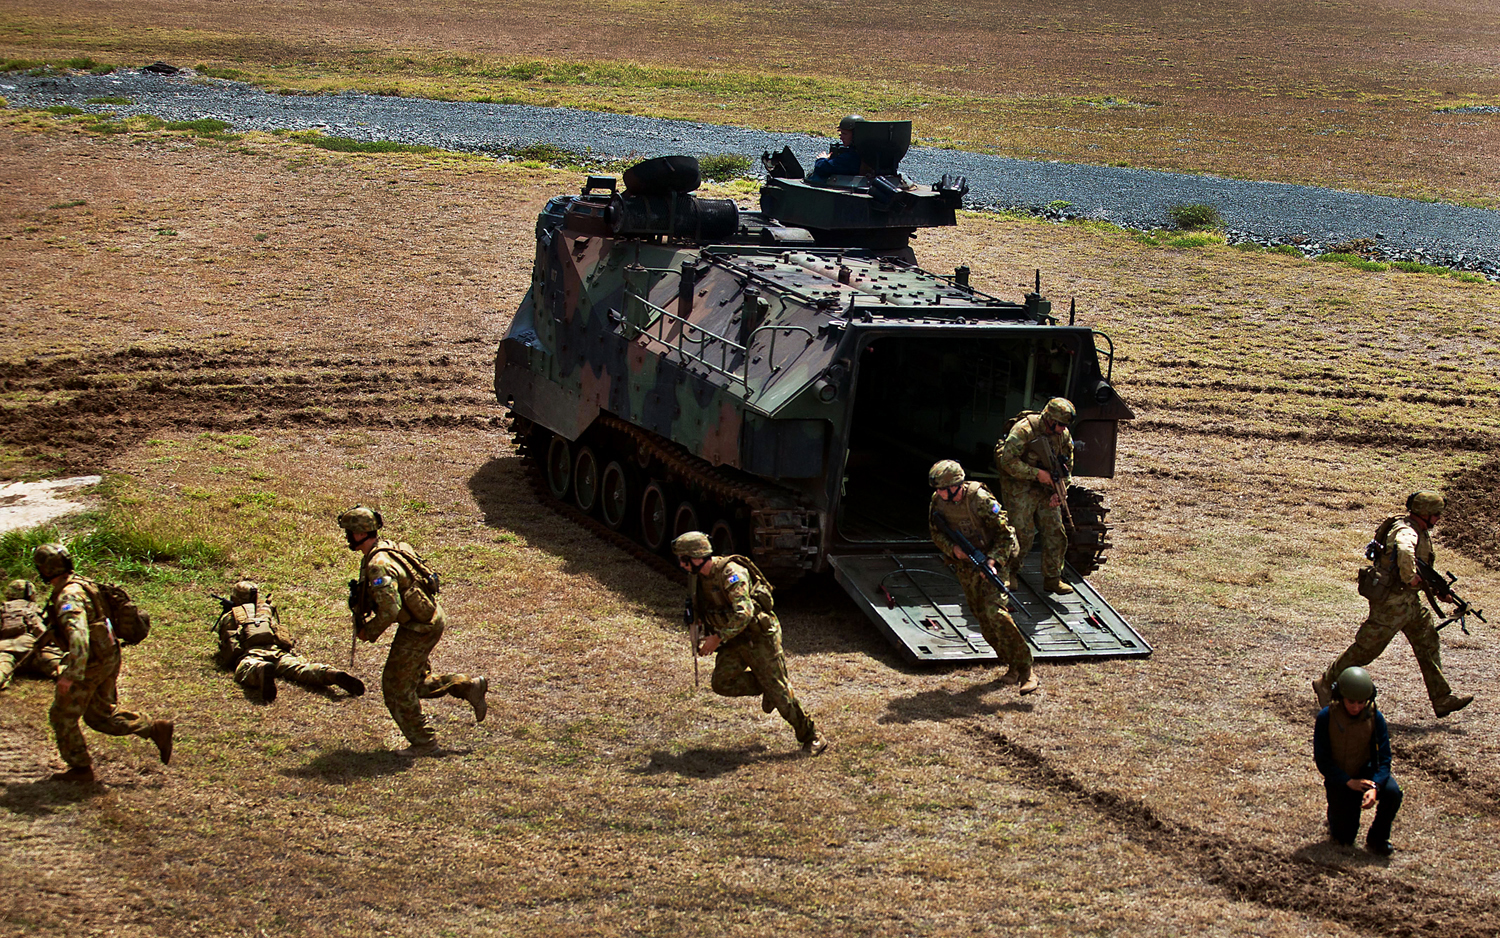 File:Flickr - Official U.S. Navy Imagery - Australian army ...